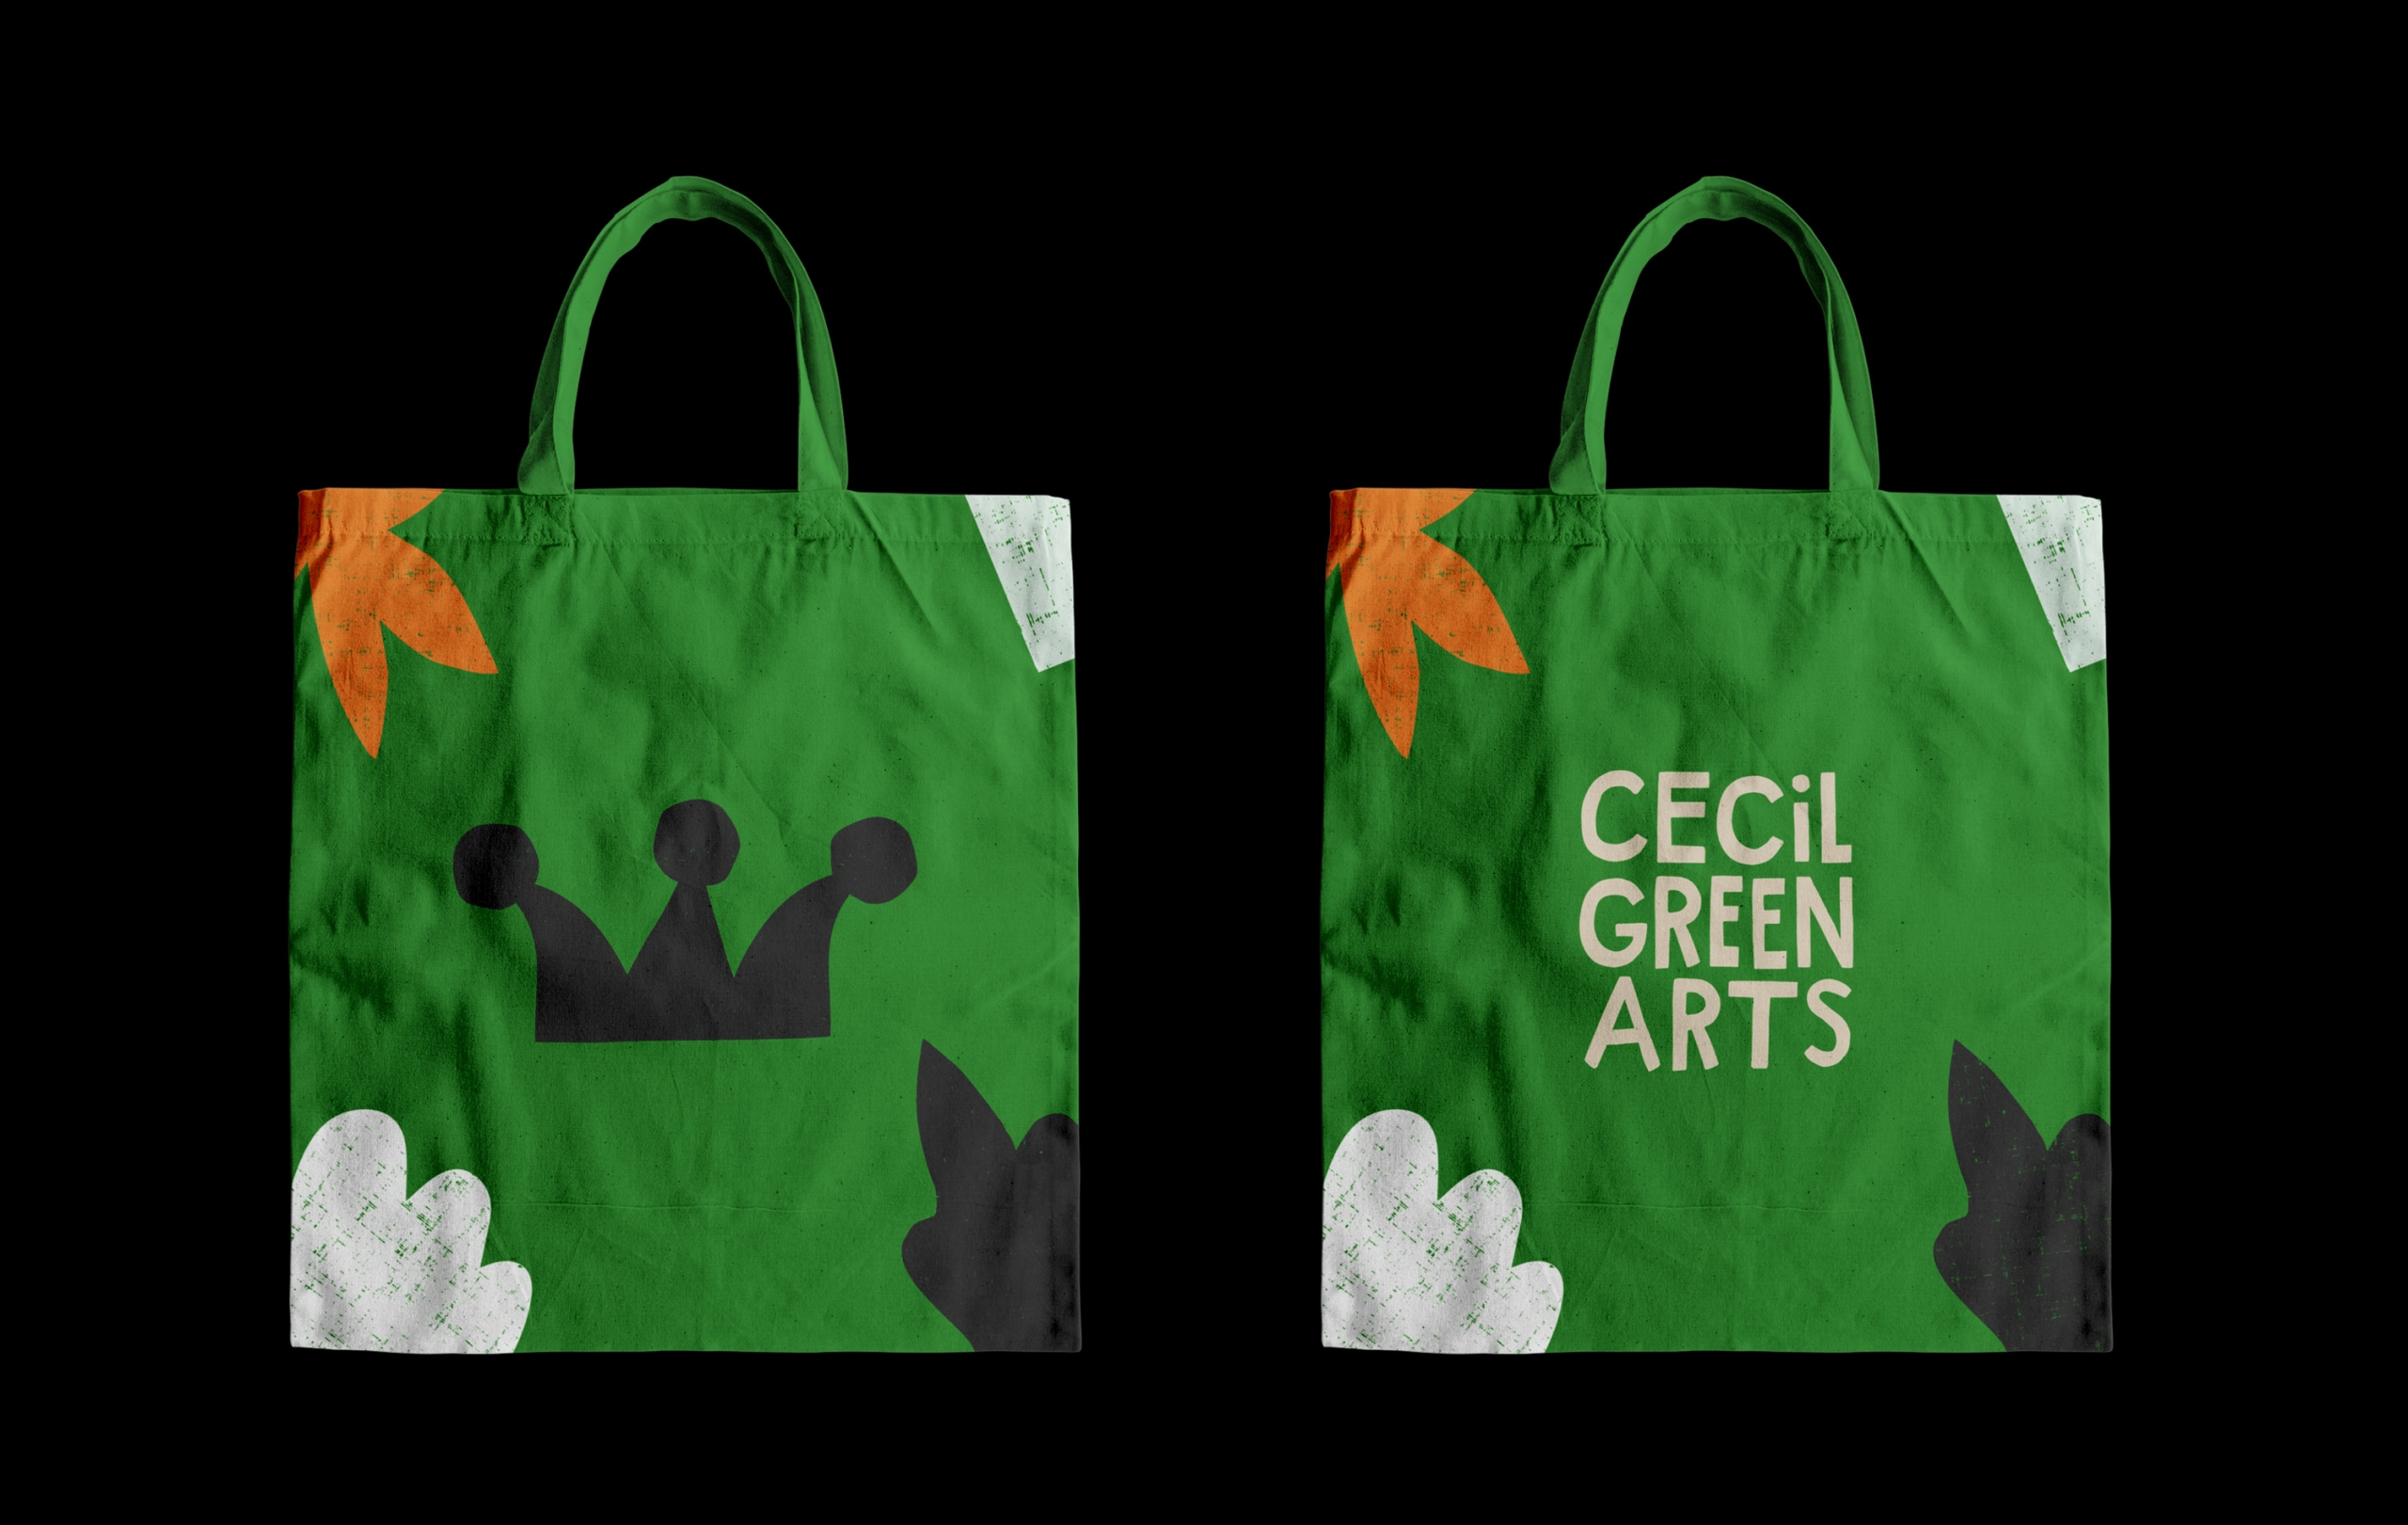 Cecil Green Arts Branded Tote Bag Design